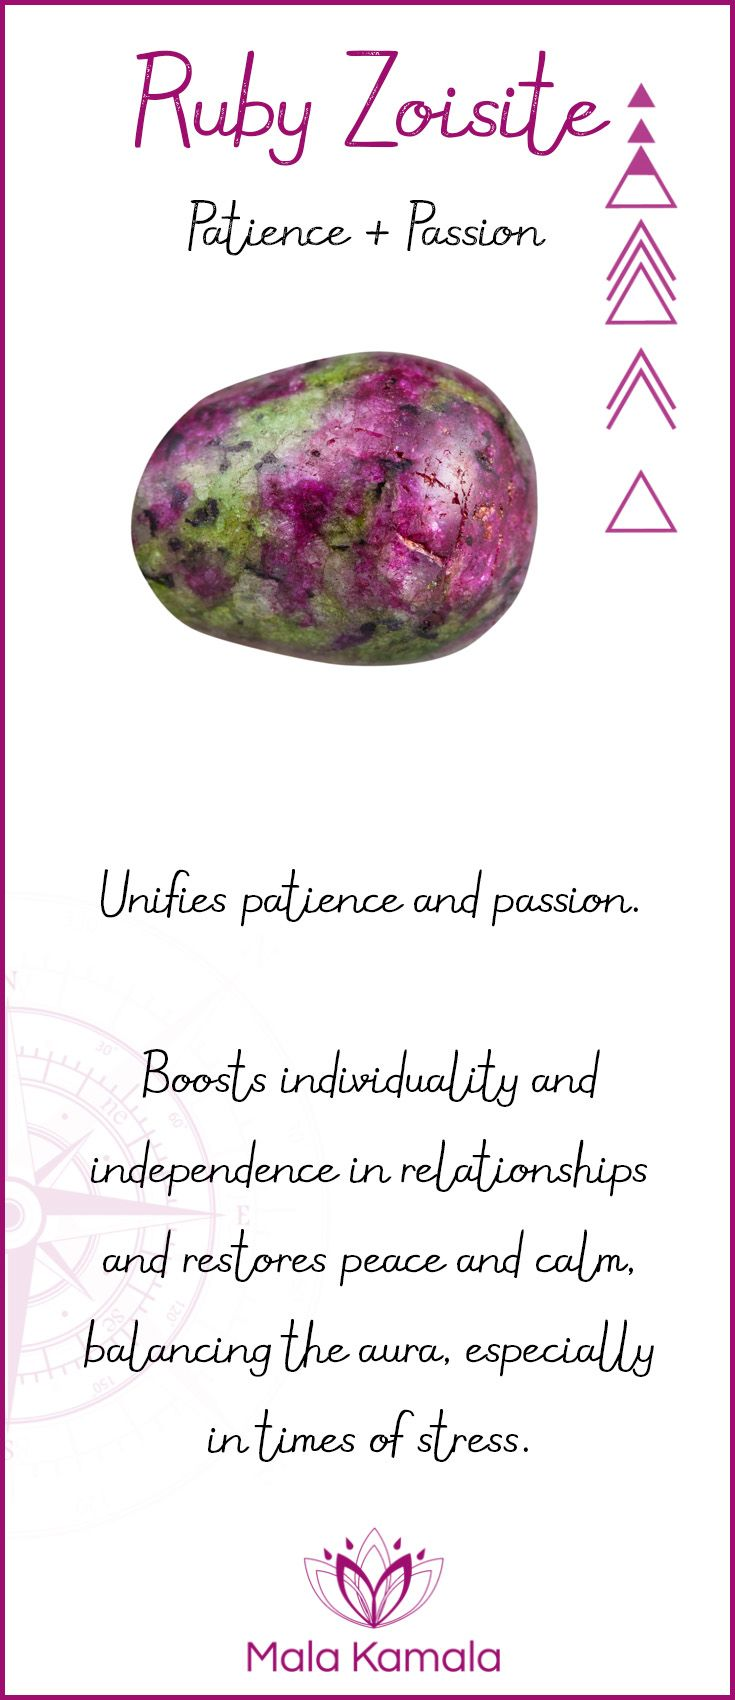 What is the meaning and crystal and chakra healing properties of ruby zoisite? A stone for patience and passion.